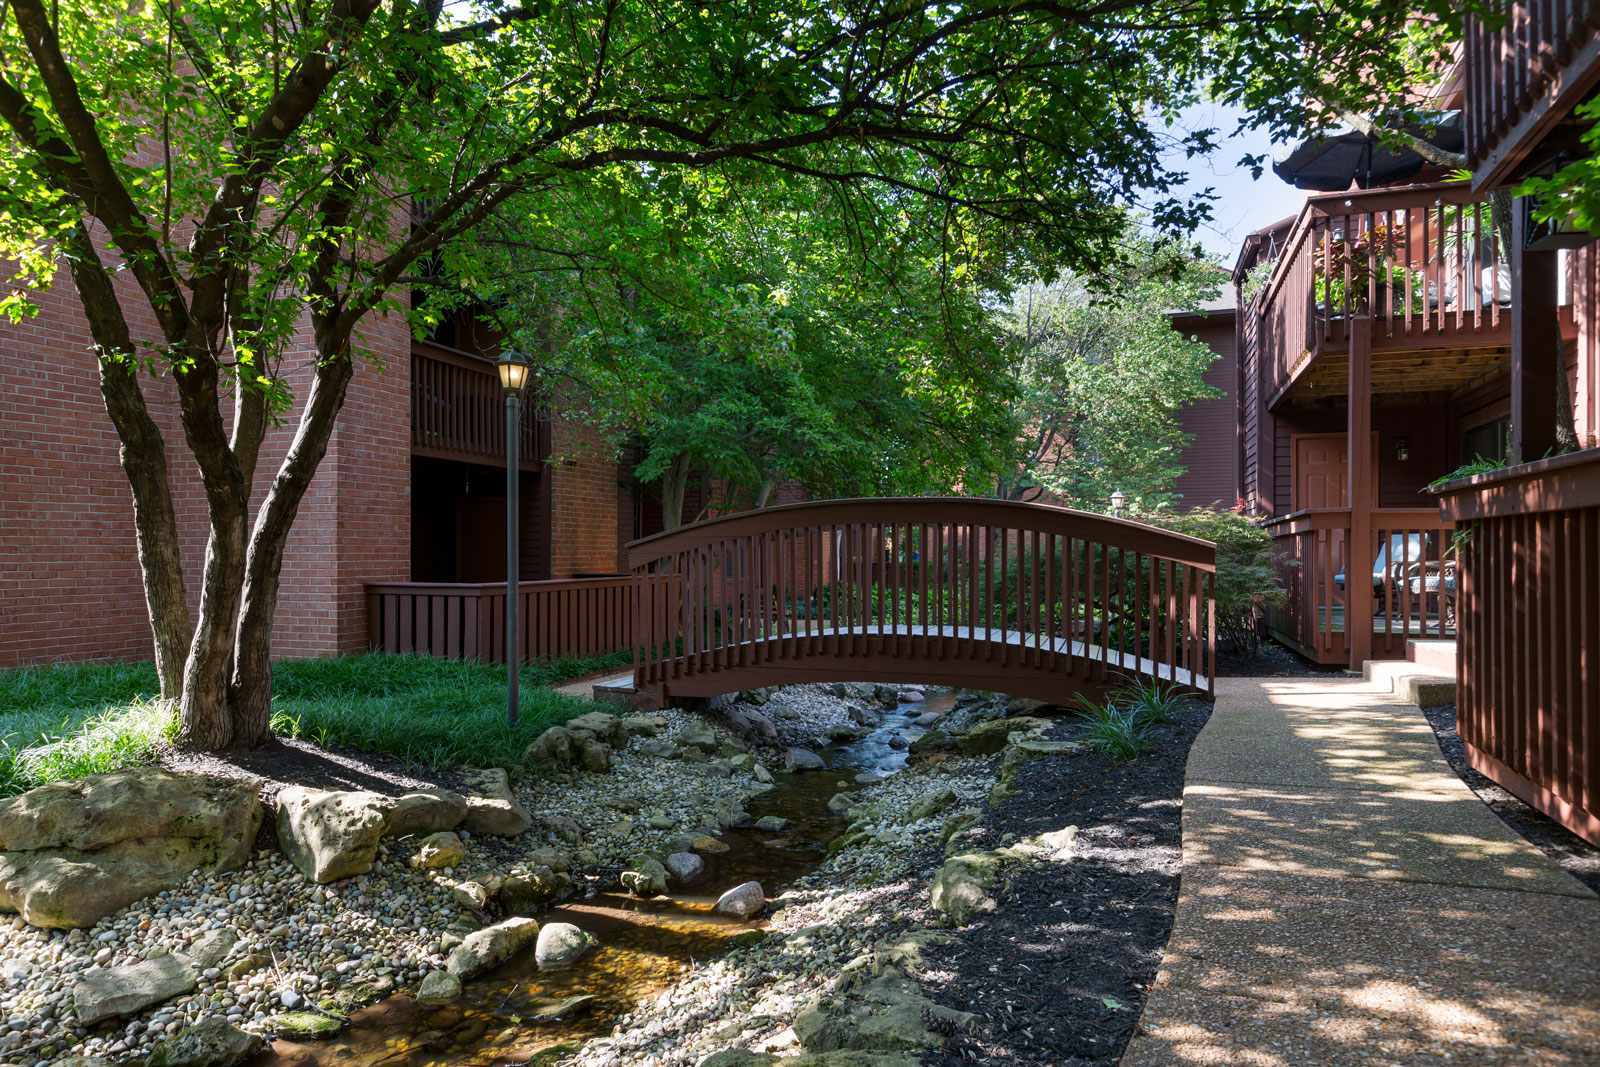 A bridge and nature at Chesterfield Village Apartments